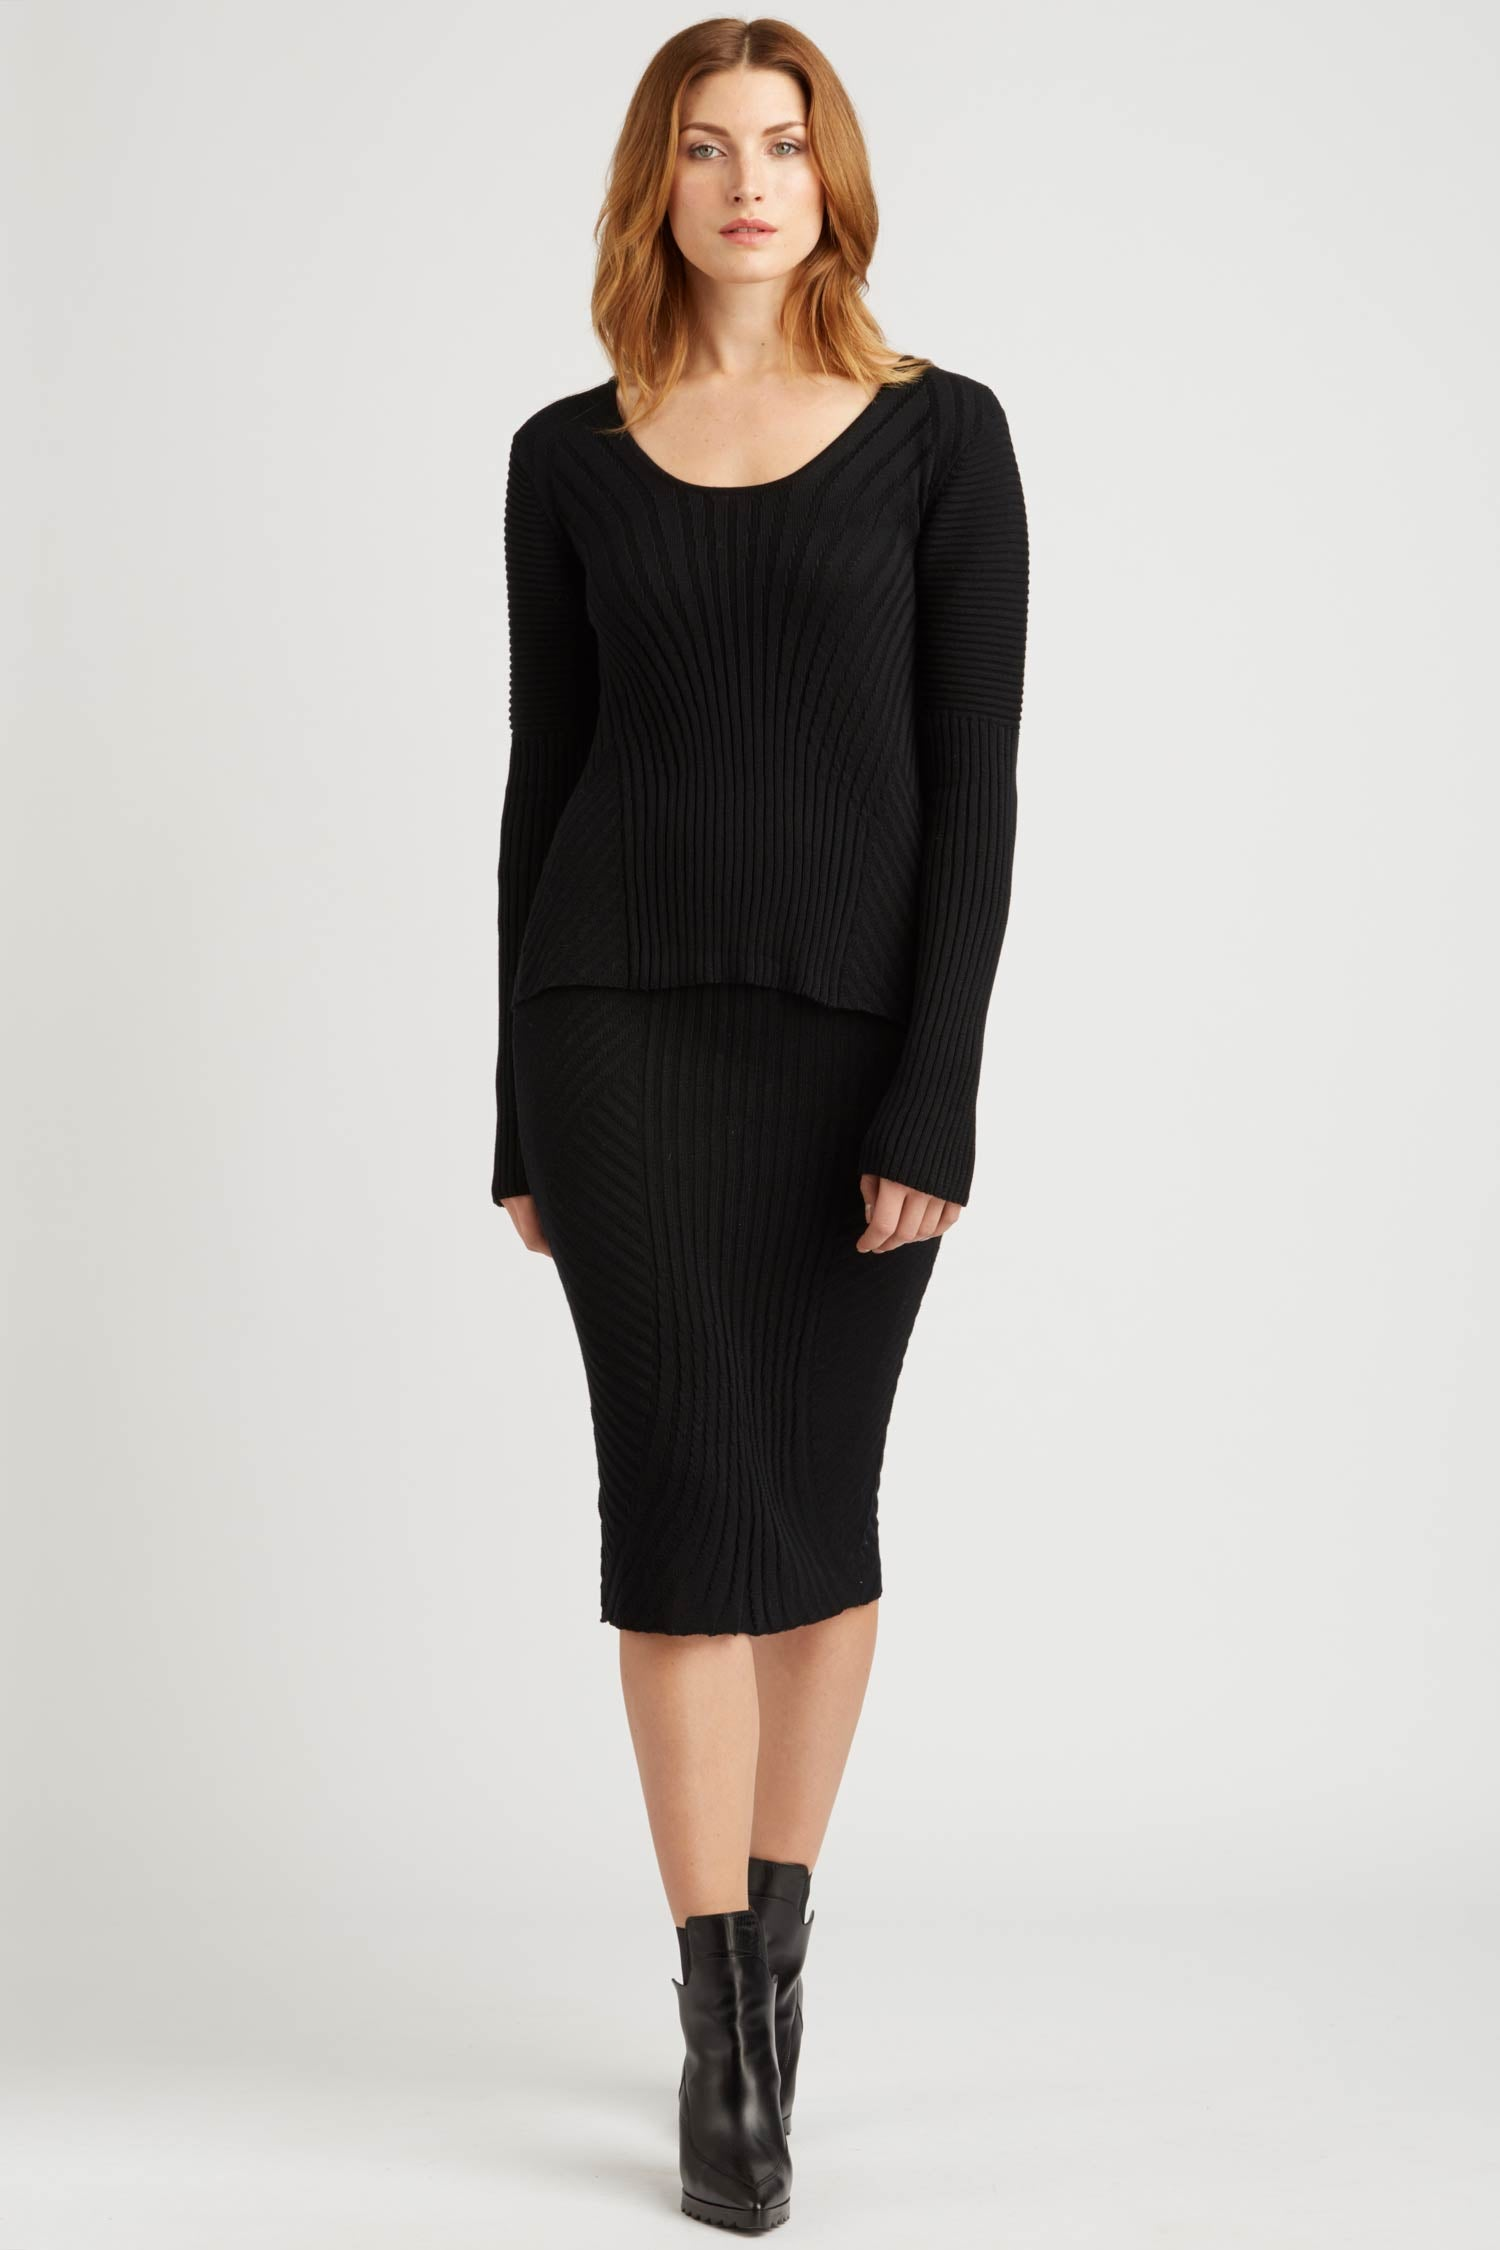 Womens Rib Knit Skirt in Black | Sustainable Fashion